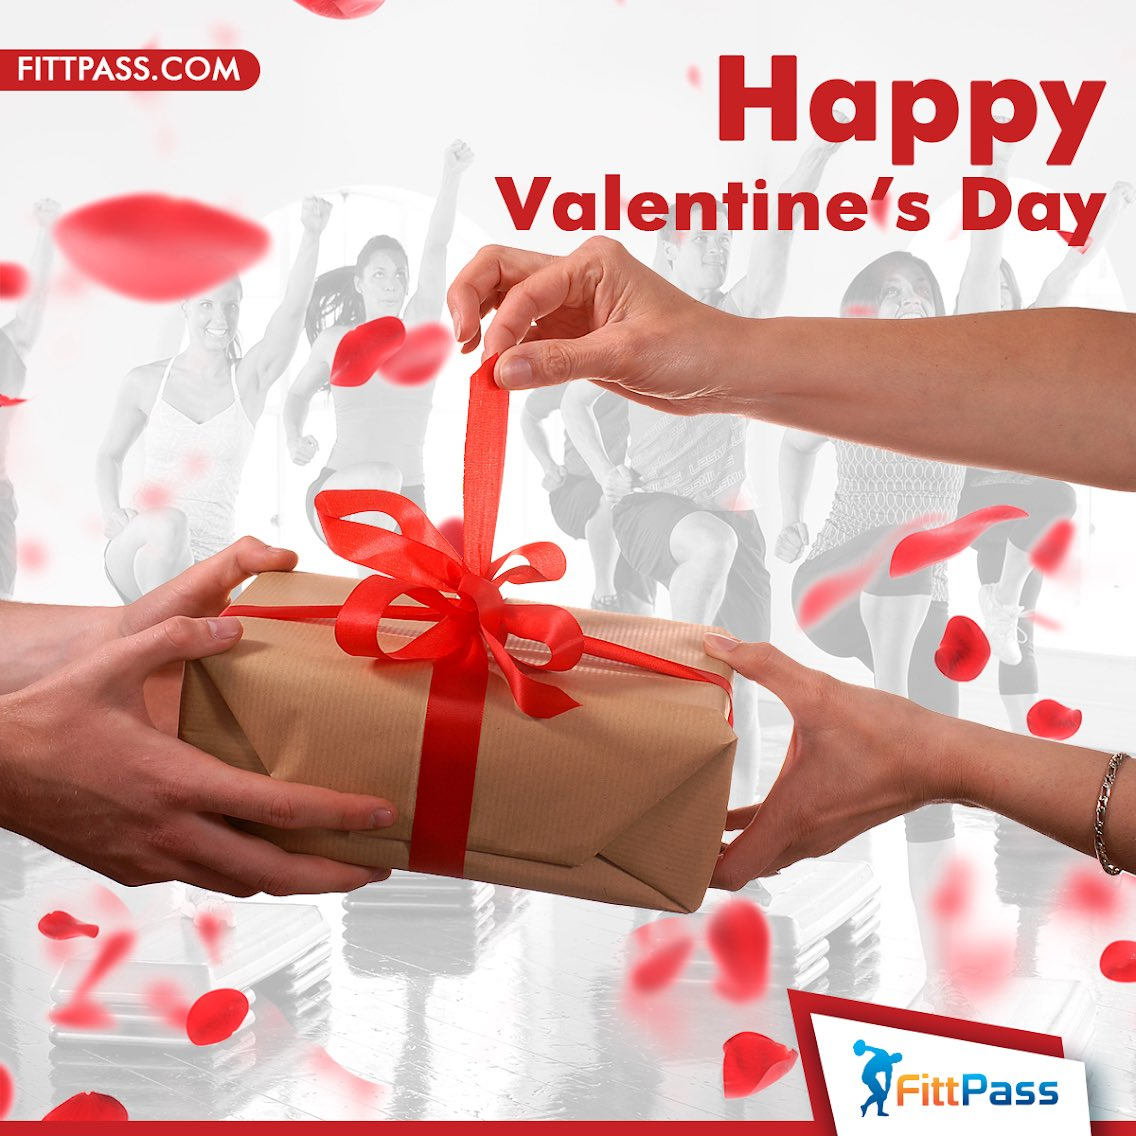 Roses are red Violets are blue Nothing says LOVE Like a workout with you!  Forget the chocolates this year and bond over a hardcore workout! Gift your loved one a membership to any of our 155+ facilities => https://goo.gl/S785EF   #Valentinesday #Valentines2020 #FitValentine